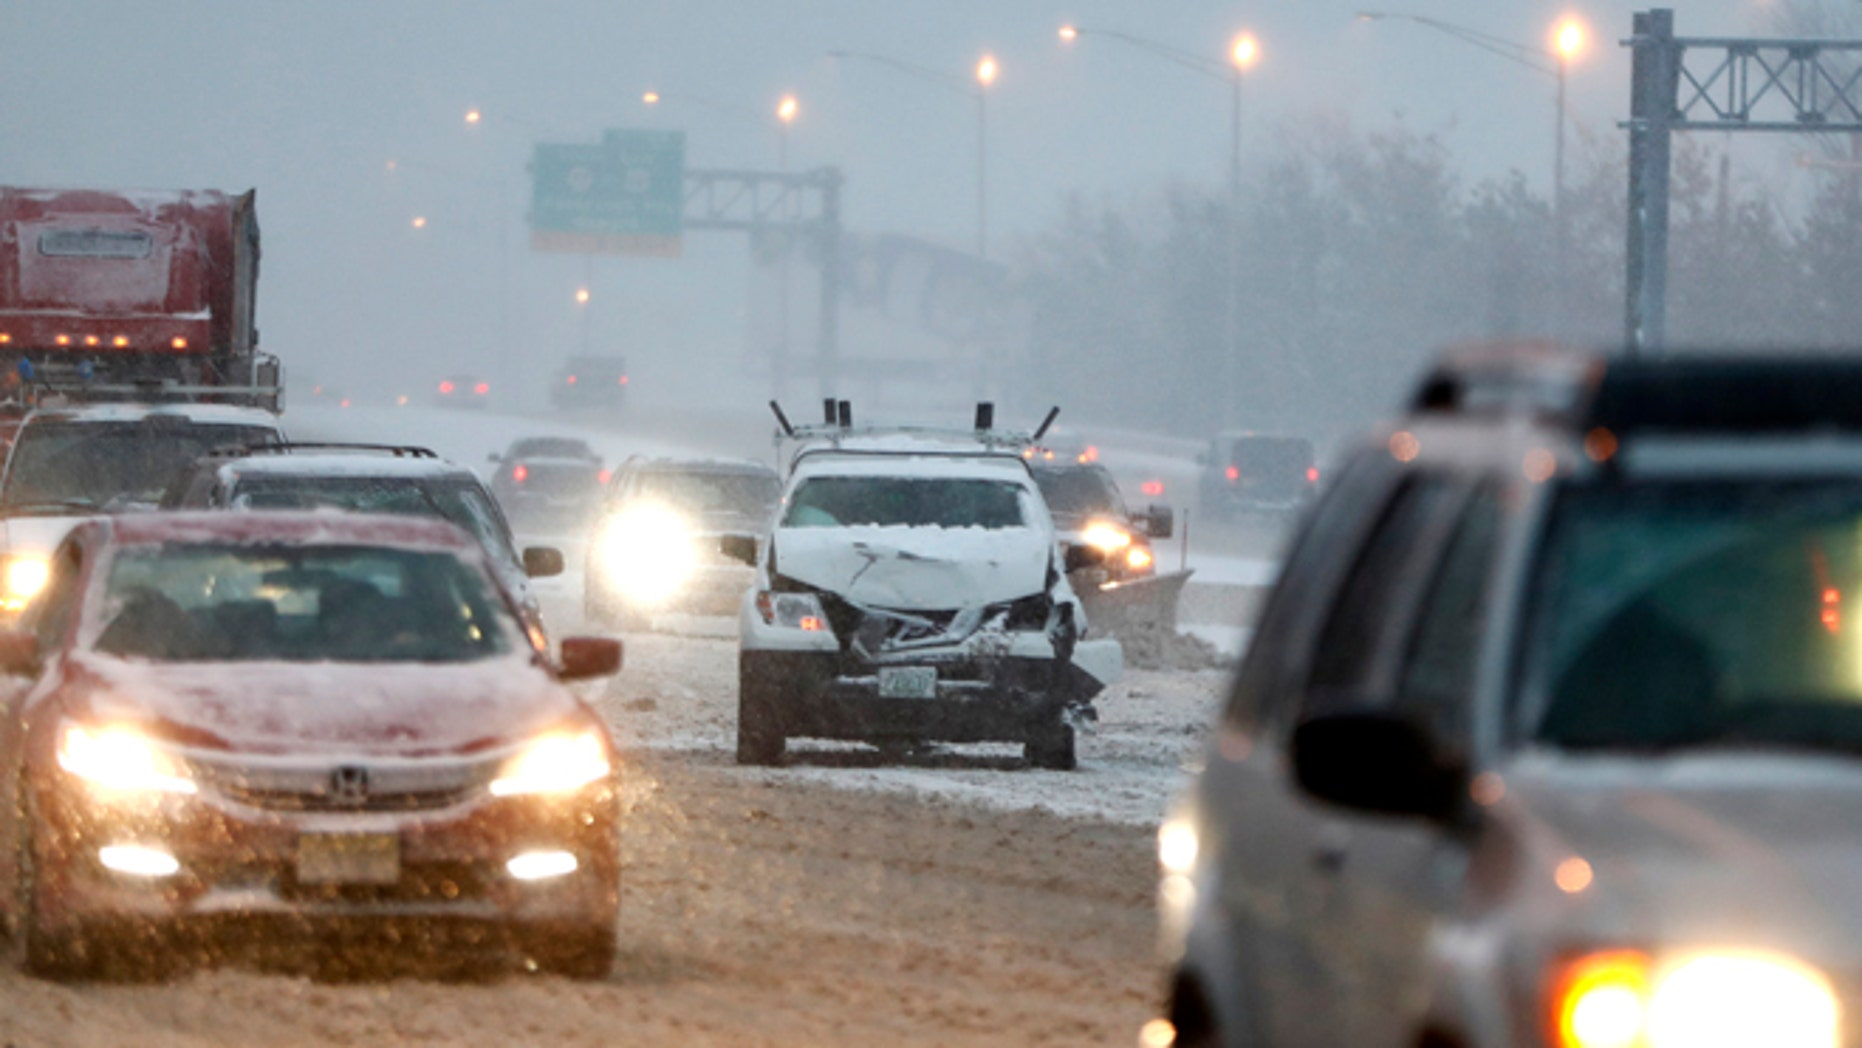 A vehicle involved in a crash sits on the fast lane of Highway Interstate 80 after an accident during a snowfall, Saturday, Dec. 17, 2016, in Lodi, N.J.